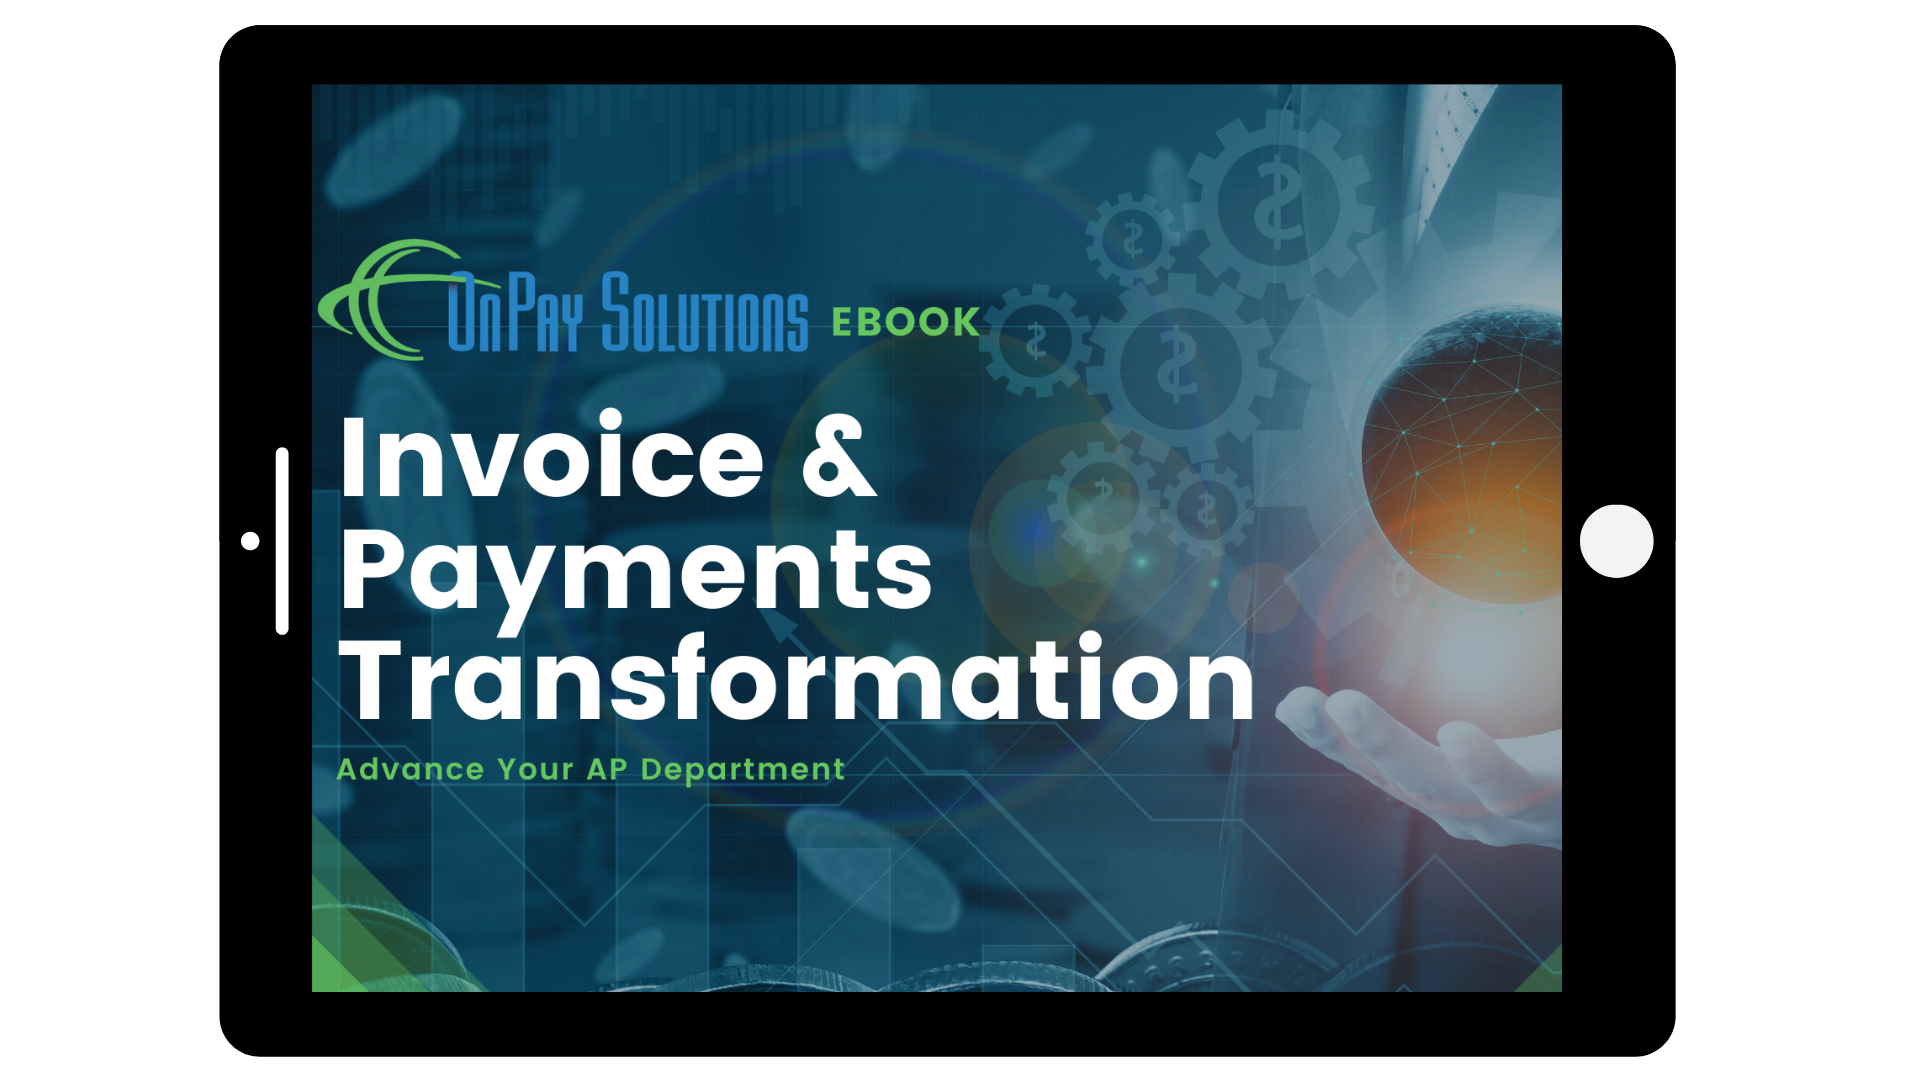 Invoice and Payments Transformation Title set into a tablet